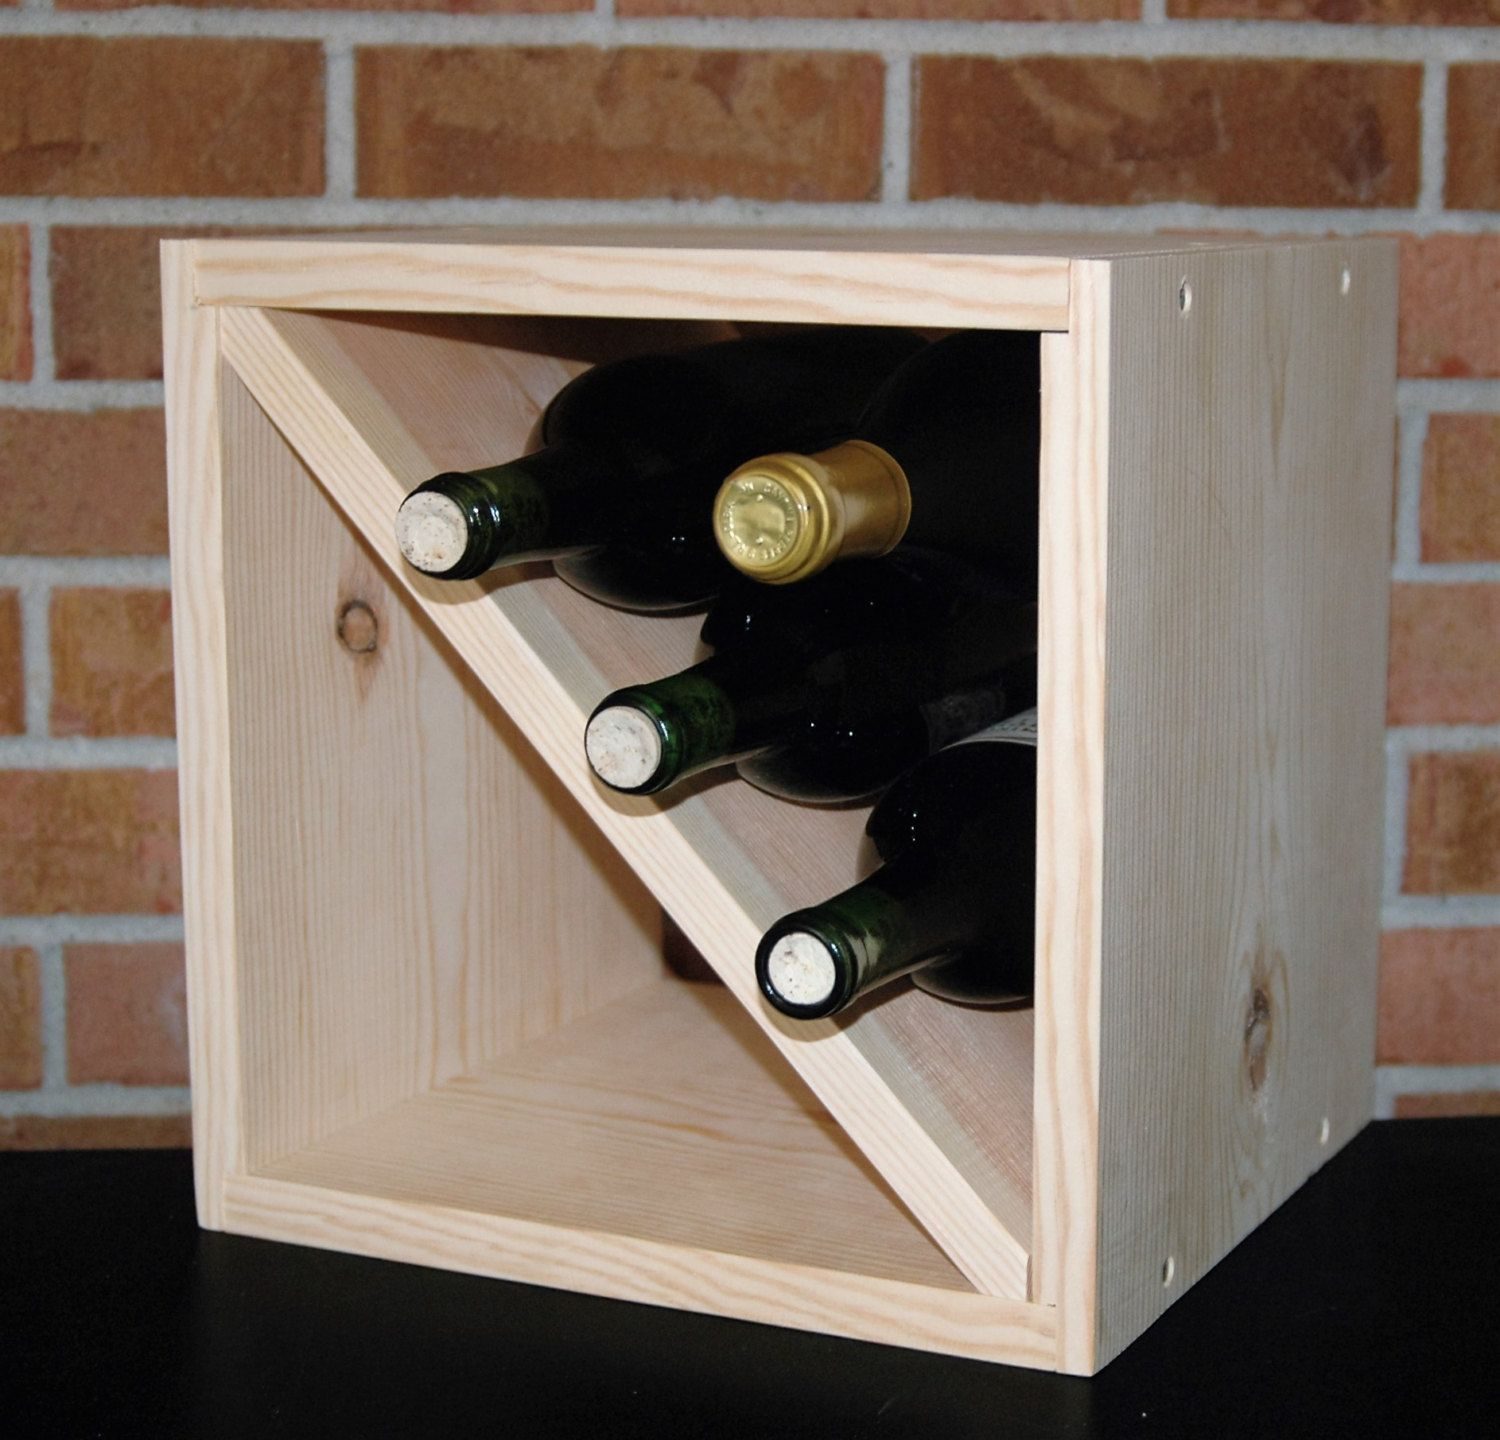 12 By 10 75 Wood Wine Rack Square Diagonal Kitchen Etsy In 2020